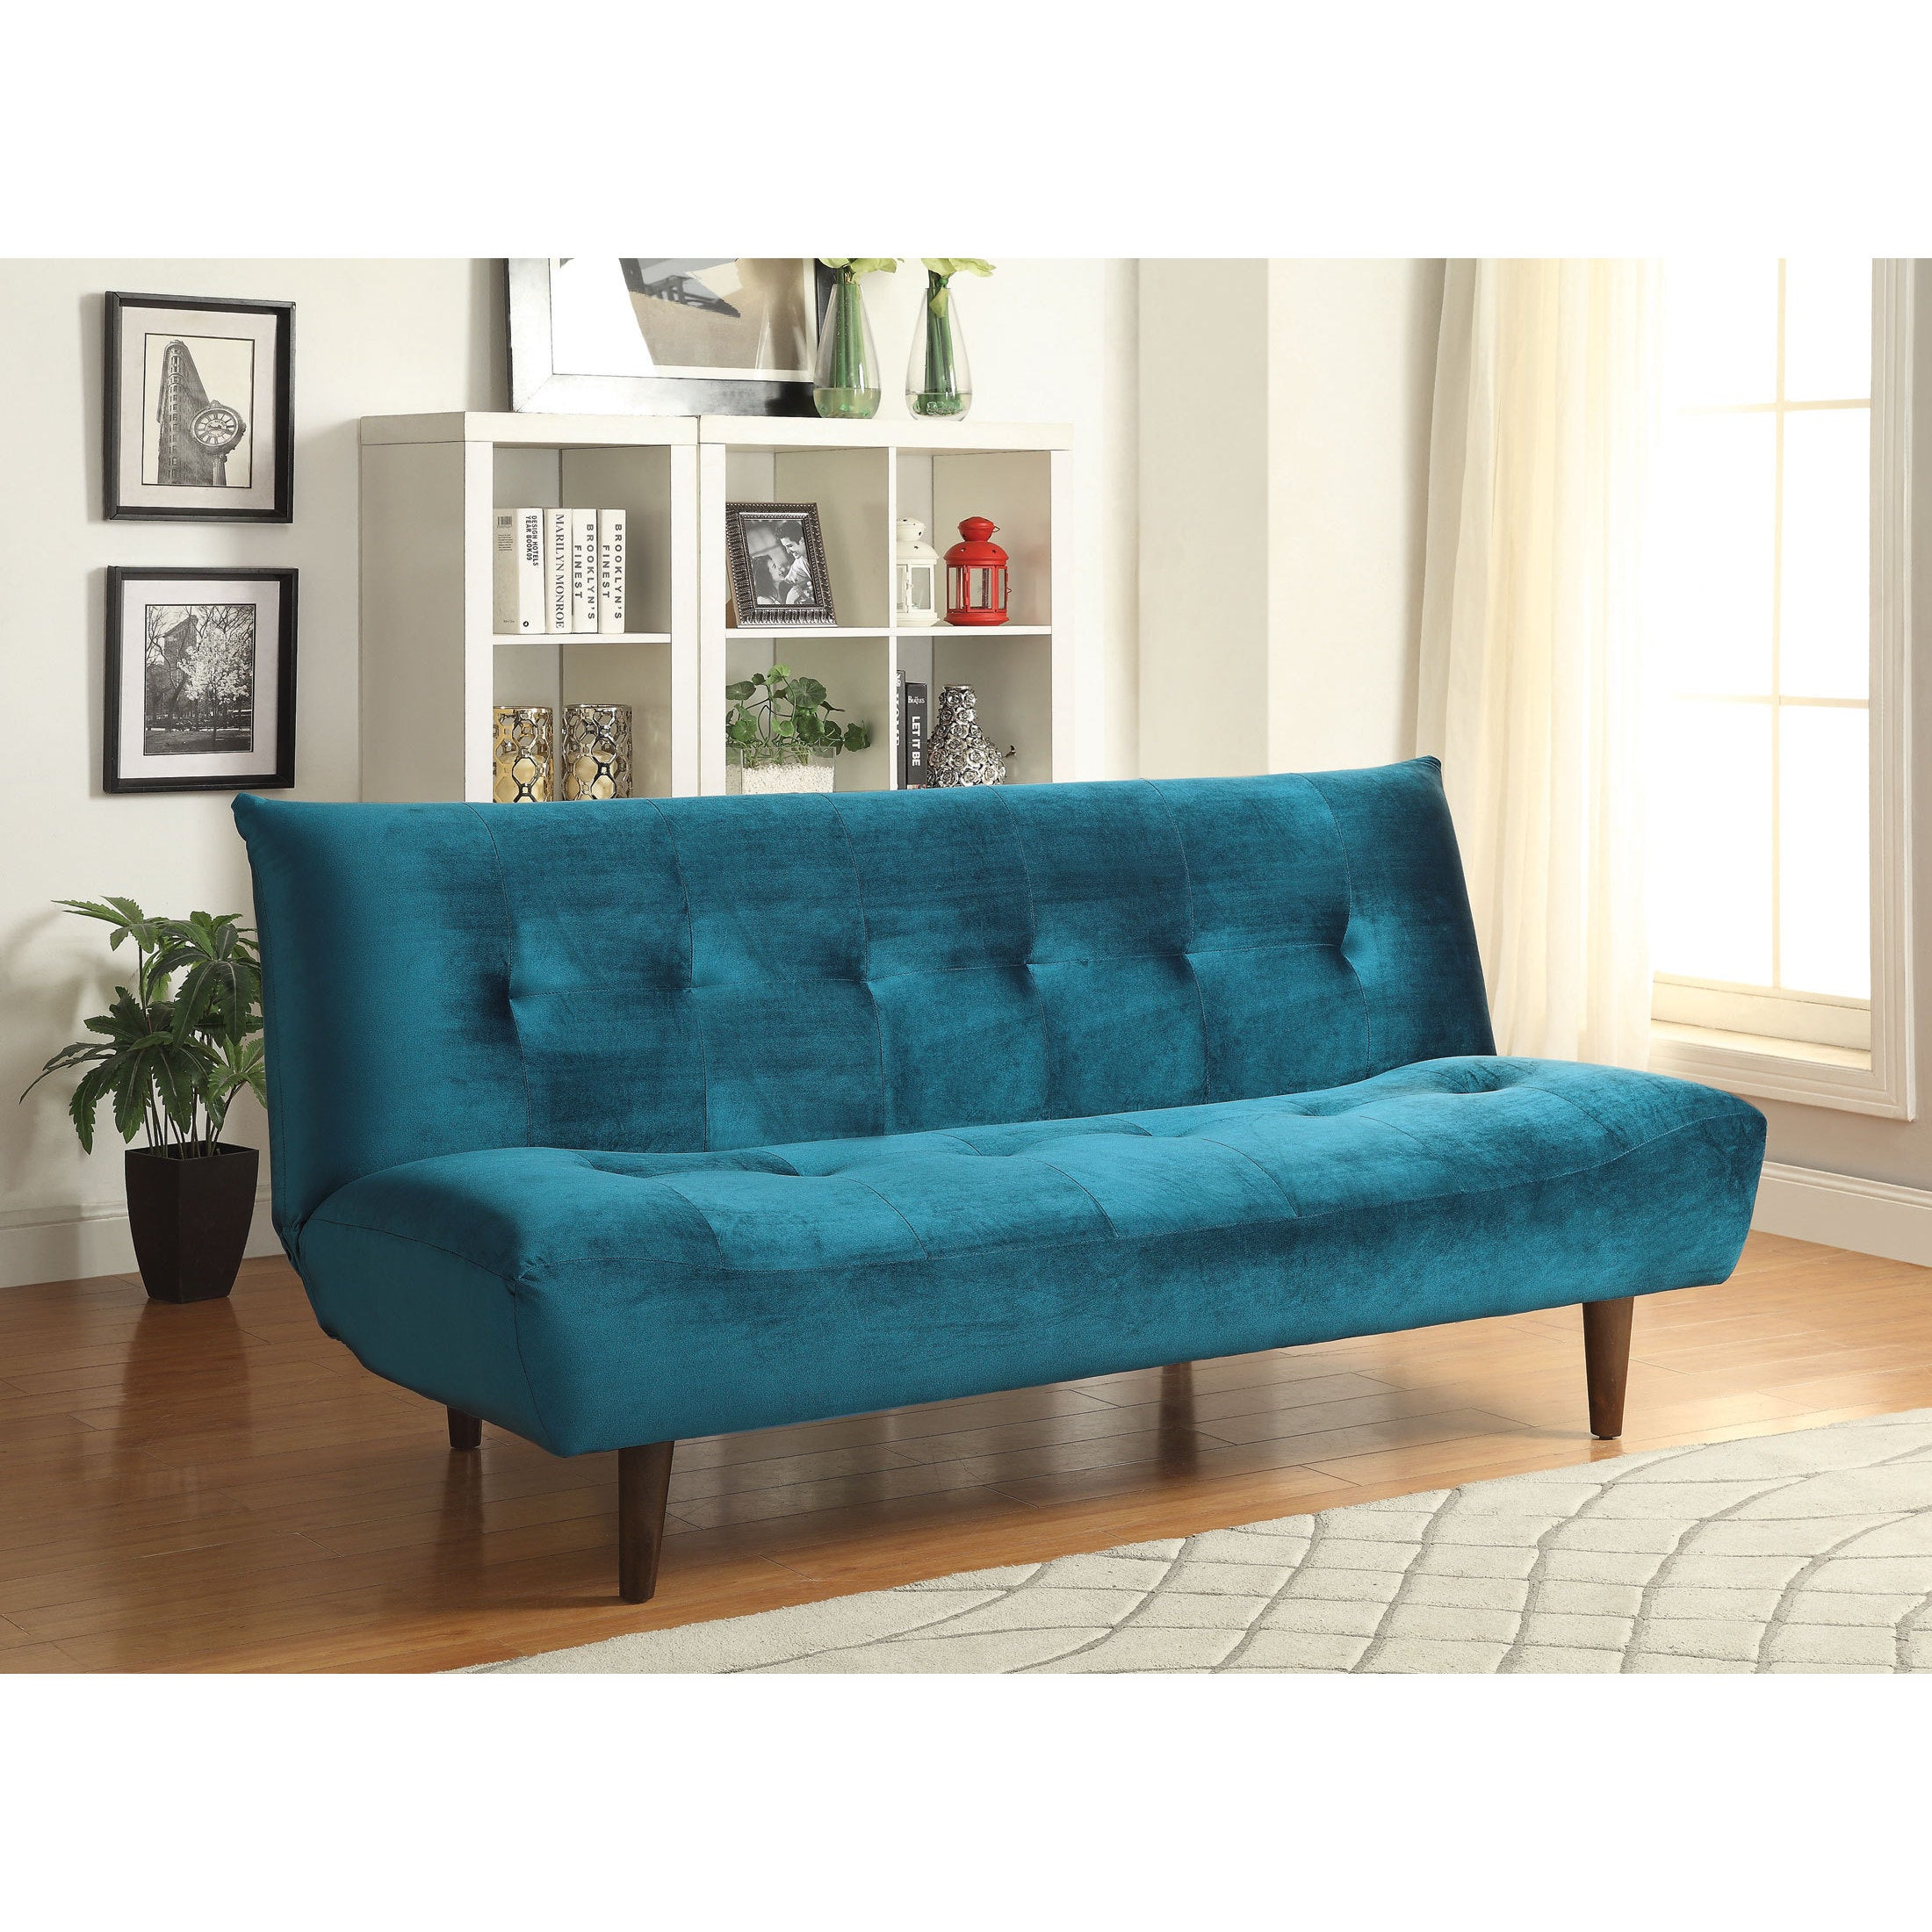 Coaster Company Home Furnishings Sofa Bed Teal Free Shipping Today 12189591